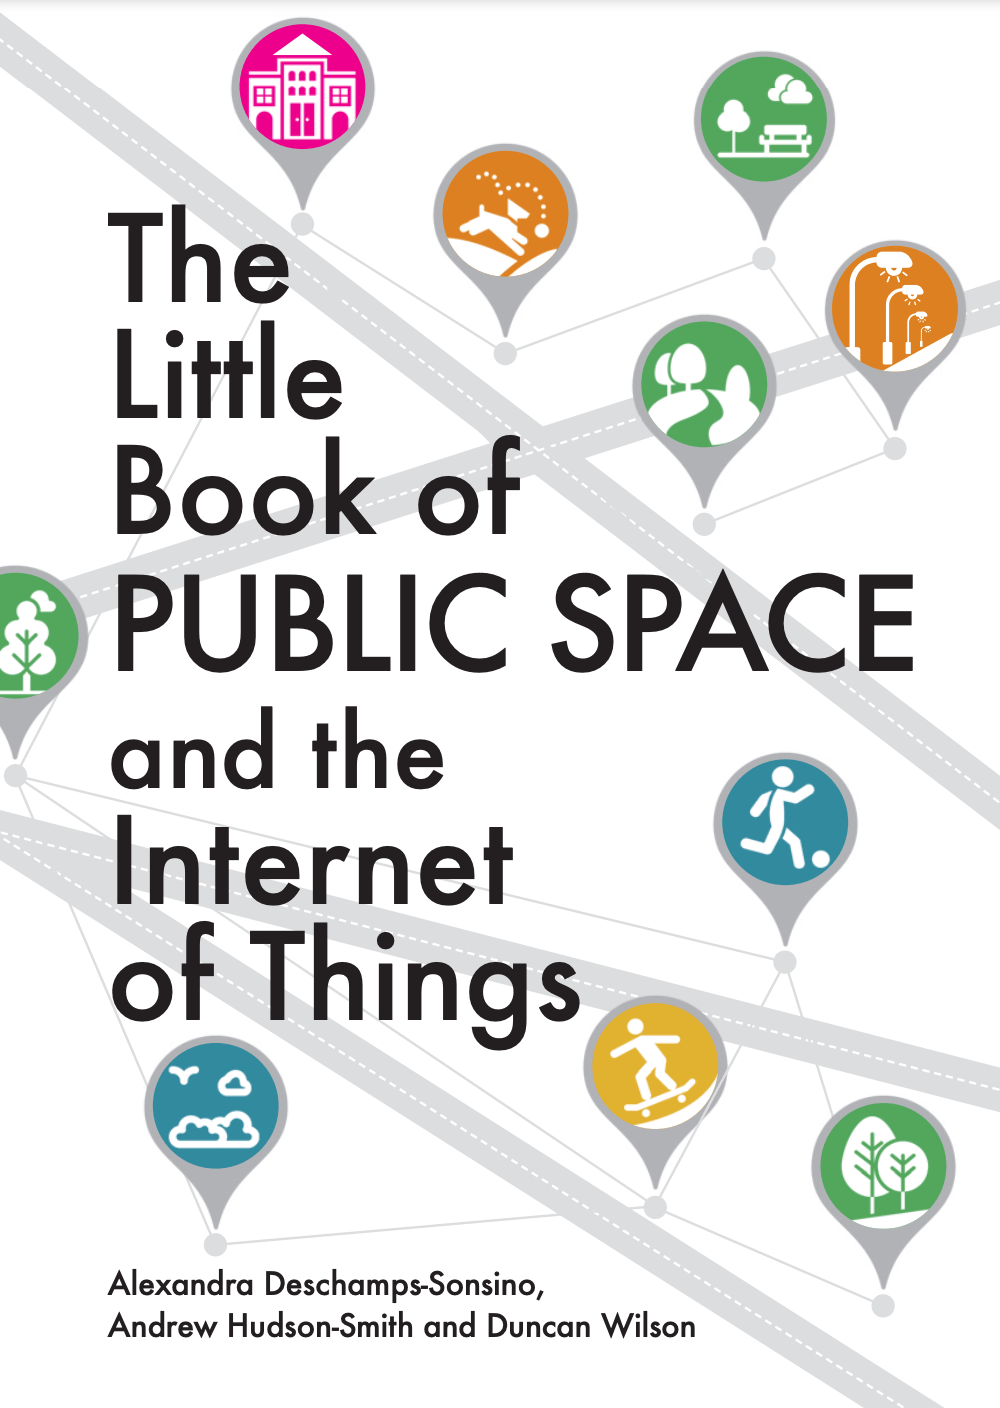 The Little Book of Public Spaces and the Internet of Things